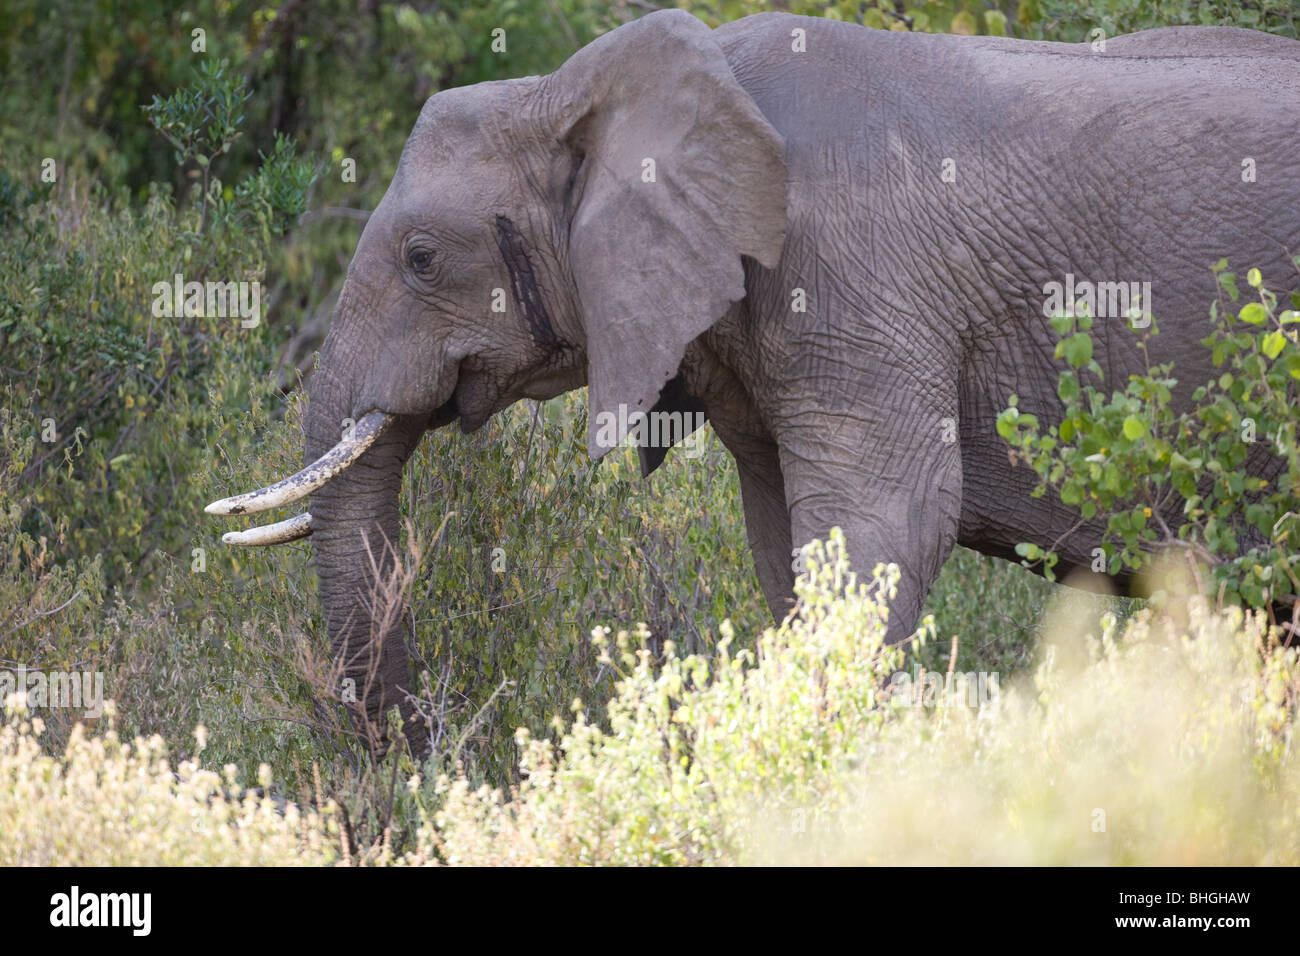 African Elephant  Loxodonta africana in profile as it emerges from the bushes in Lake Manyara, Tanzania, Africa - Stock Image